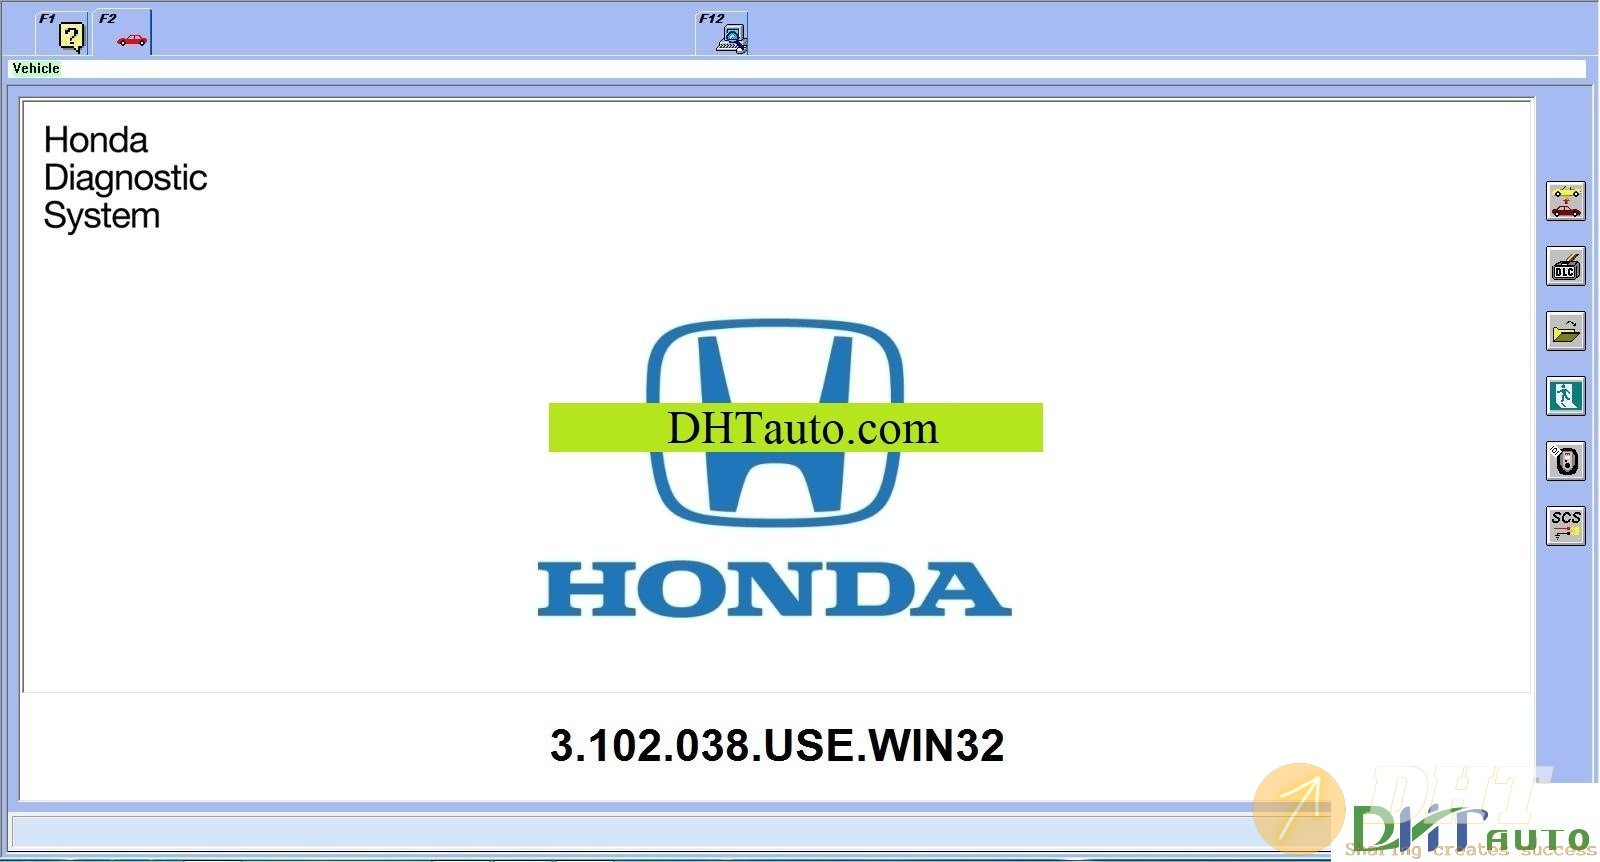 Honda-HDS-3.102.038-ECU-Rewrite-Instruction-Full-10-2017-6.jpg